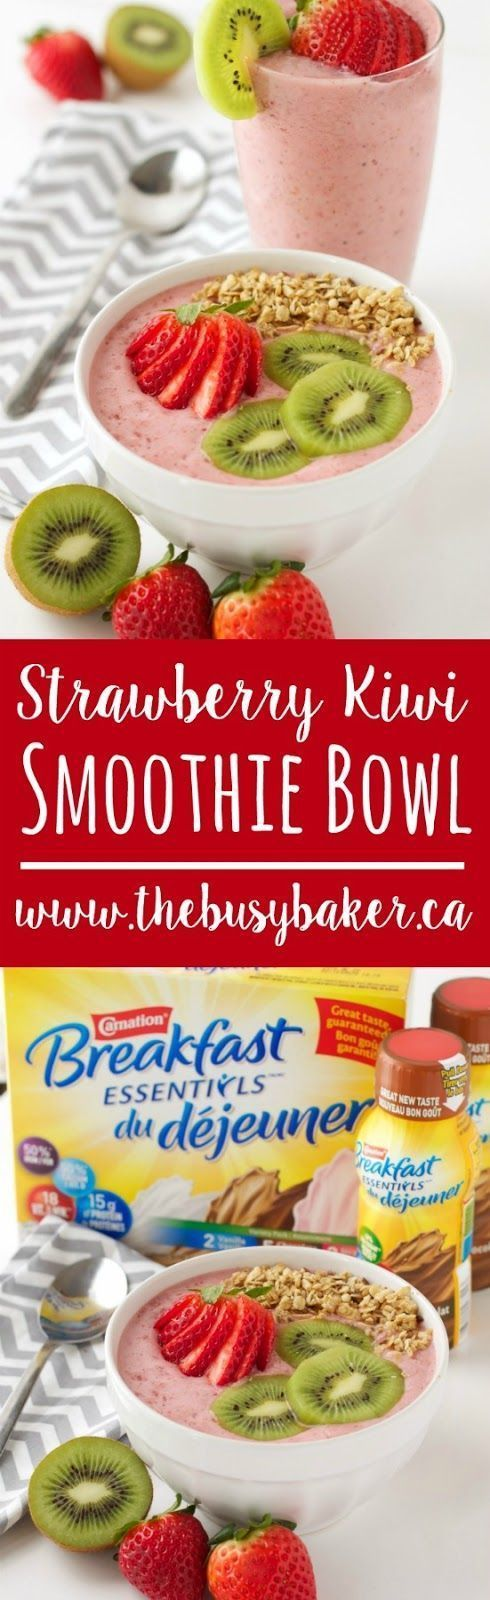 This Strawberry Kiwi Smoothie Bowl recipe from thebusybaker.ca makes your mornings easier! Featuring Carnation Breakfast Essentials®. #BetterBreakfast #CarnationSweepstakes #ad #CollectiveBias